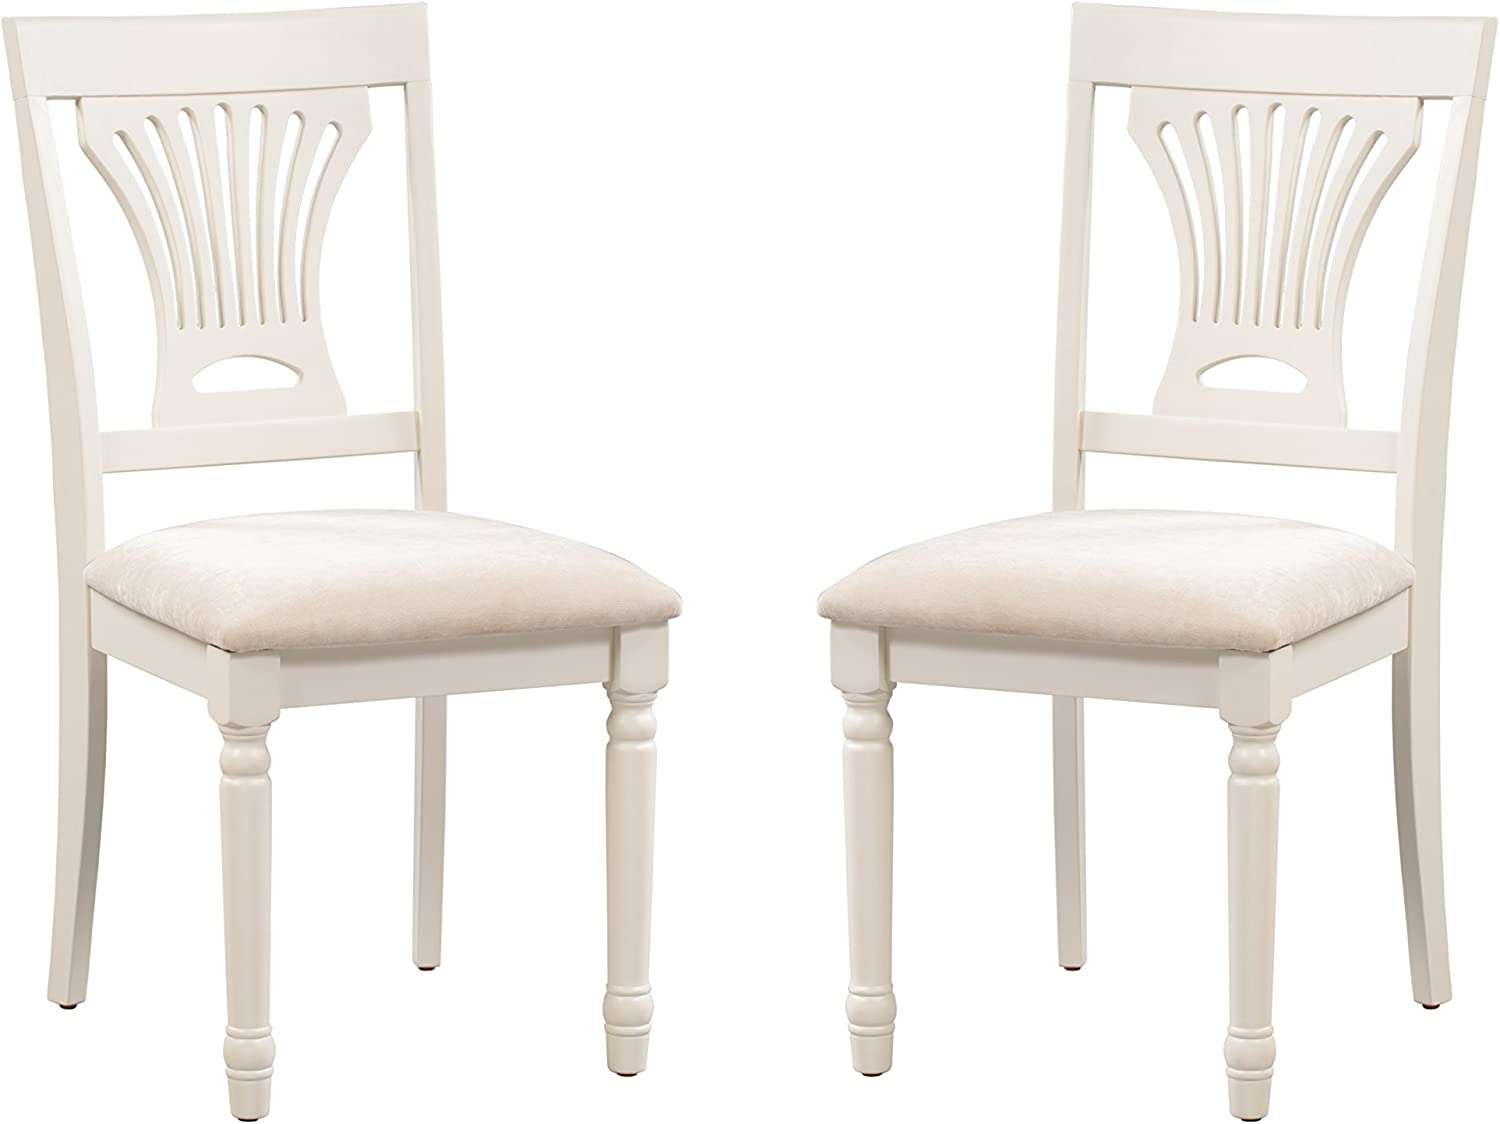 Trithi Furniture Portland Wood Ivory White Kitchen Dining Chairs with Upholstered Seat, Set of 2